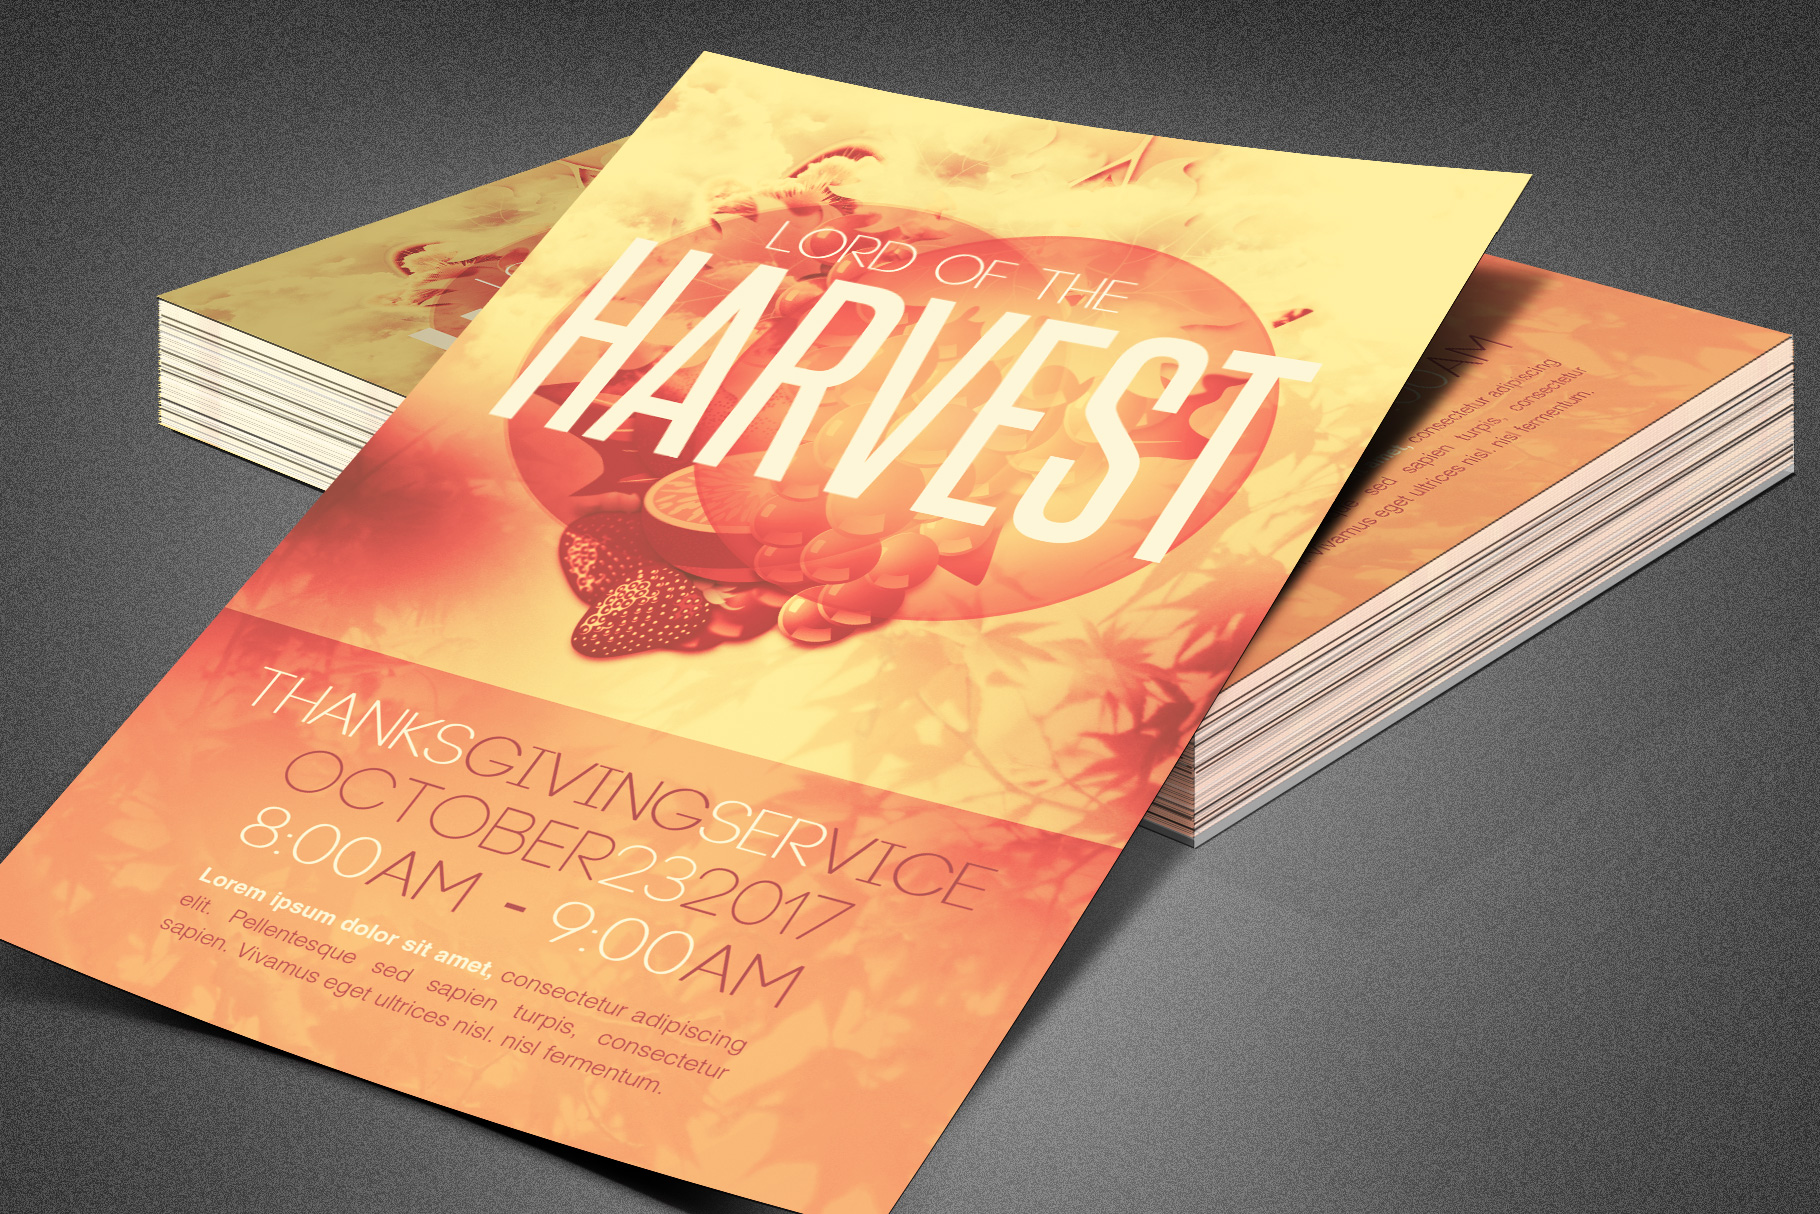 Lord of the Harvest Church Flyer example image 6